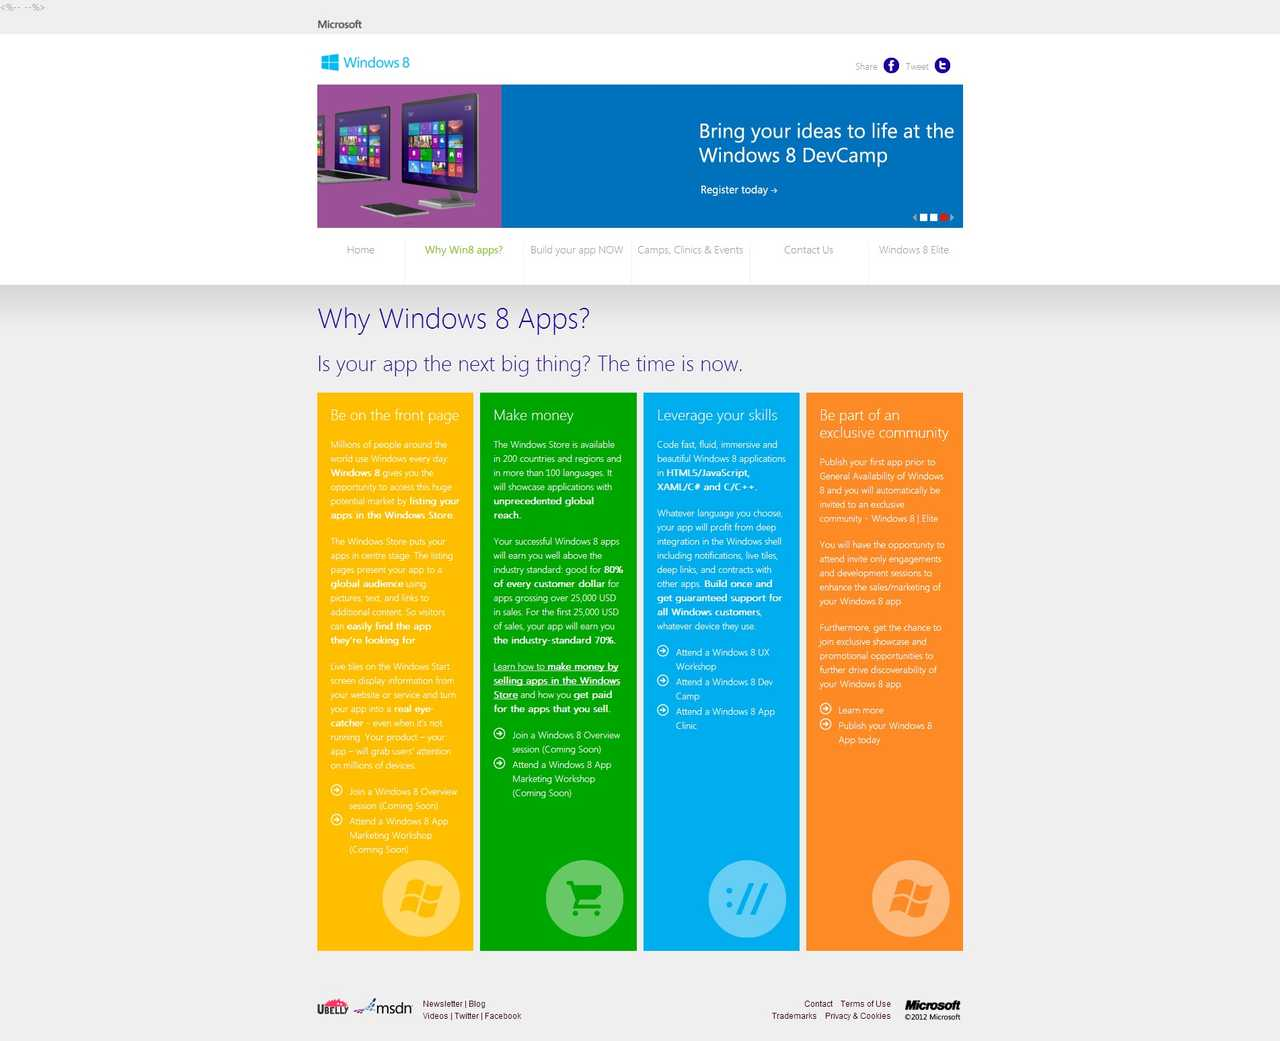 Windows 8 Campaign - Why Windows 8 Apps